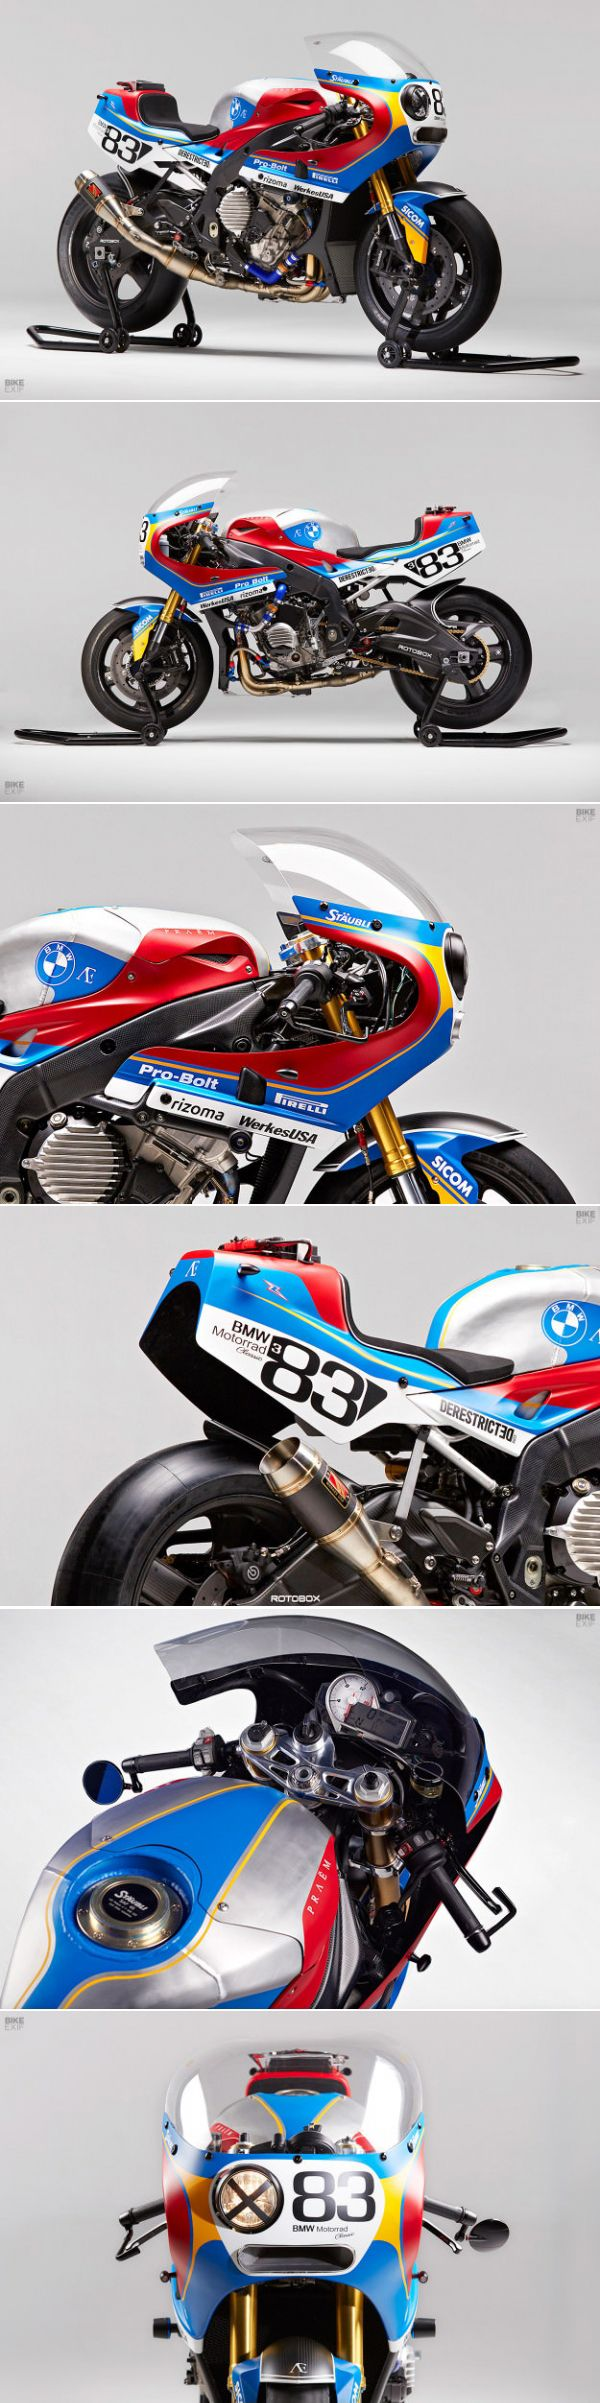 PRAËM x BMW S 1000 RR: The Pursuit Of Perfektion